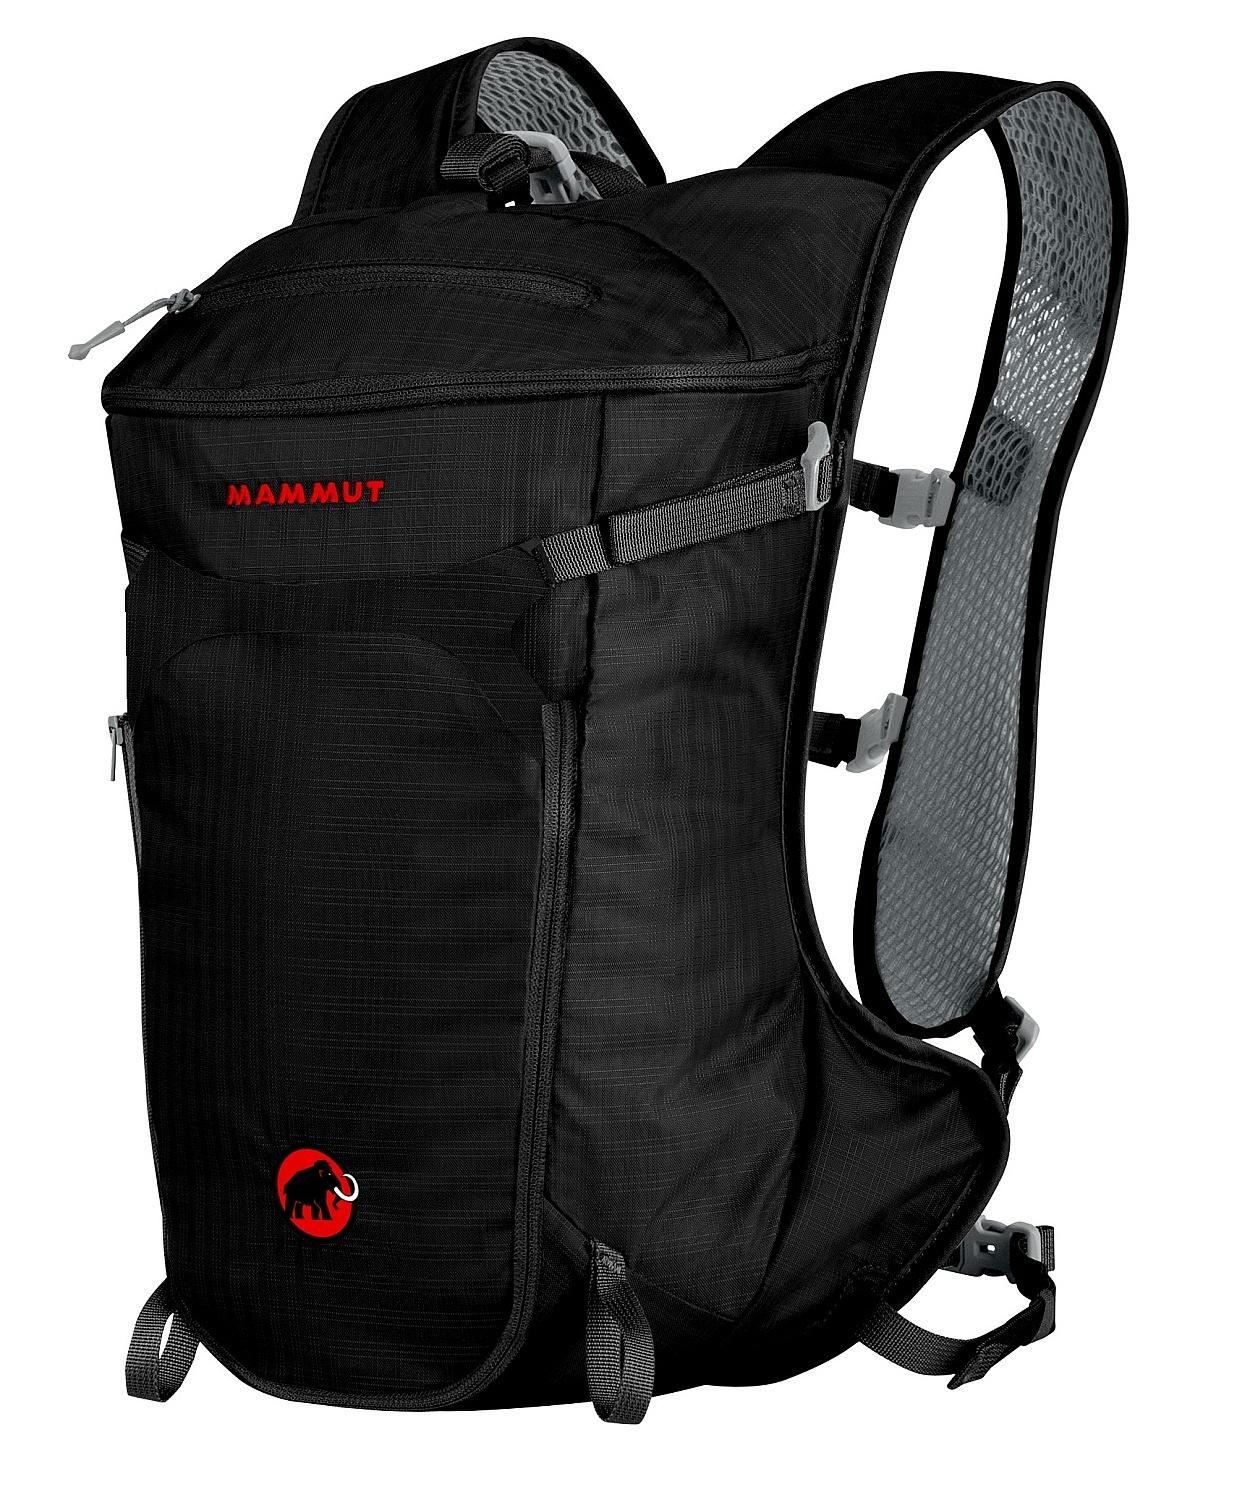 popular brand special sales for whole family backpack Mammut Neon Speed 15 - Black - Snowboard shop ...